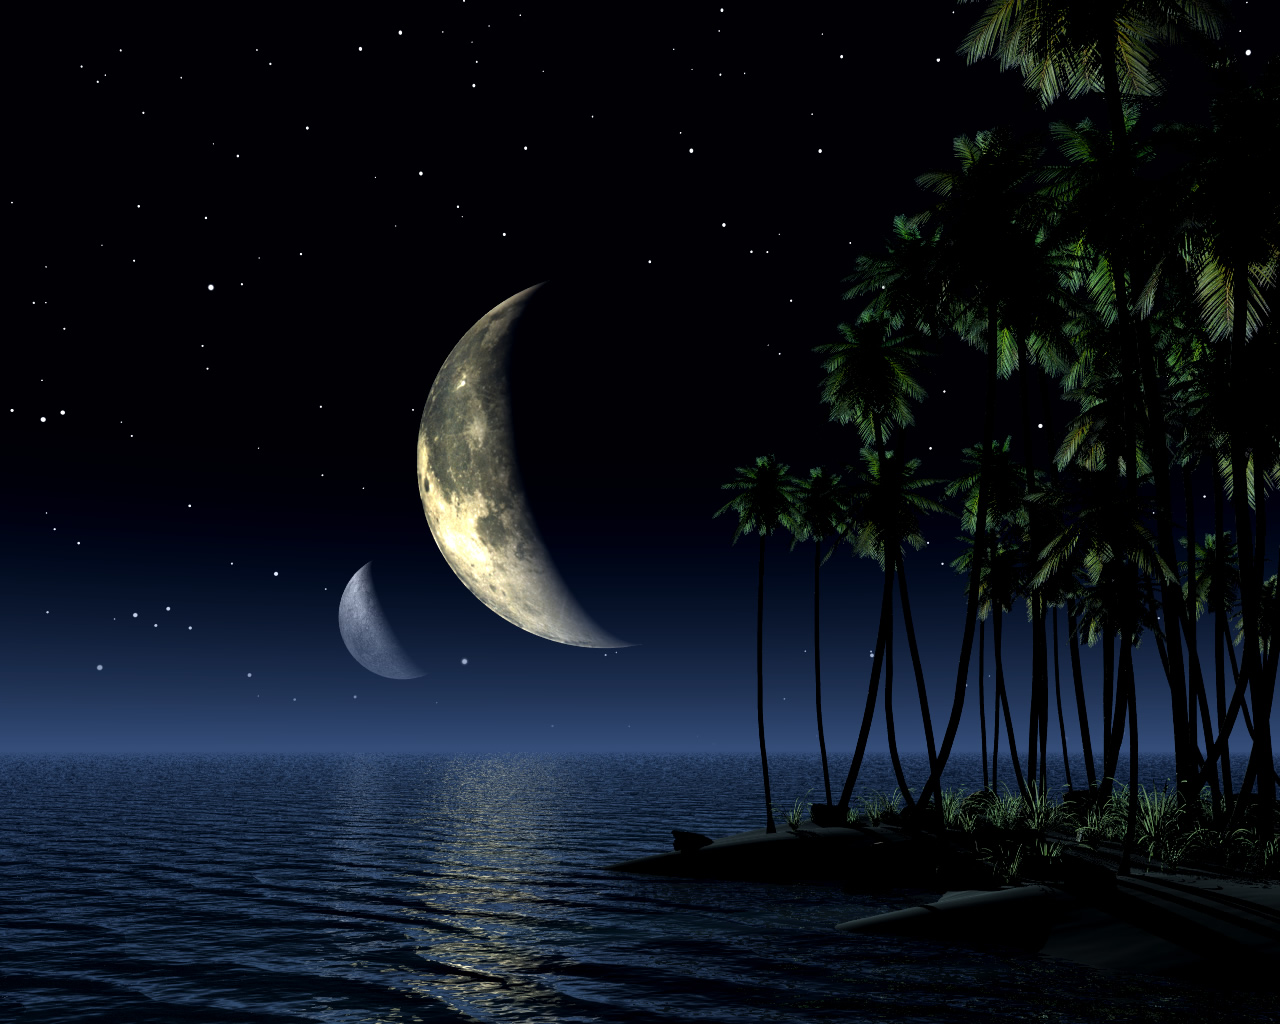 3d Moon At Night Wallpaper 3d Flying Horse Wallpaper 3d Forrest